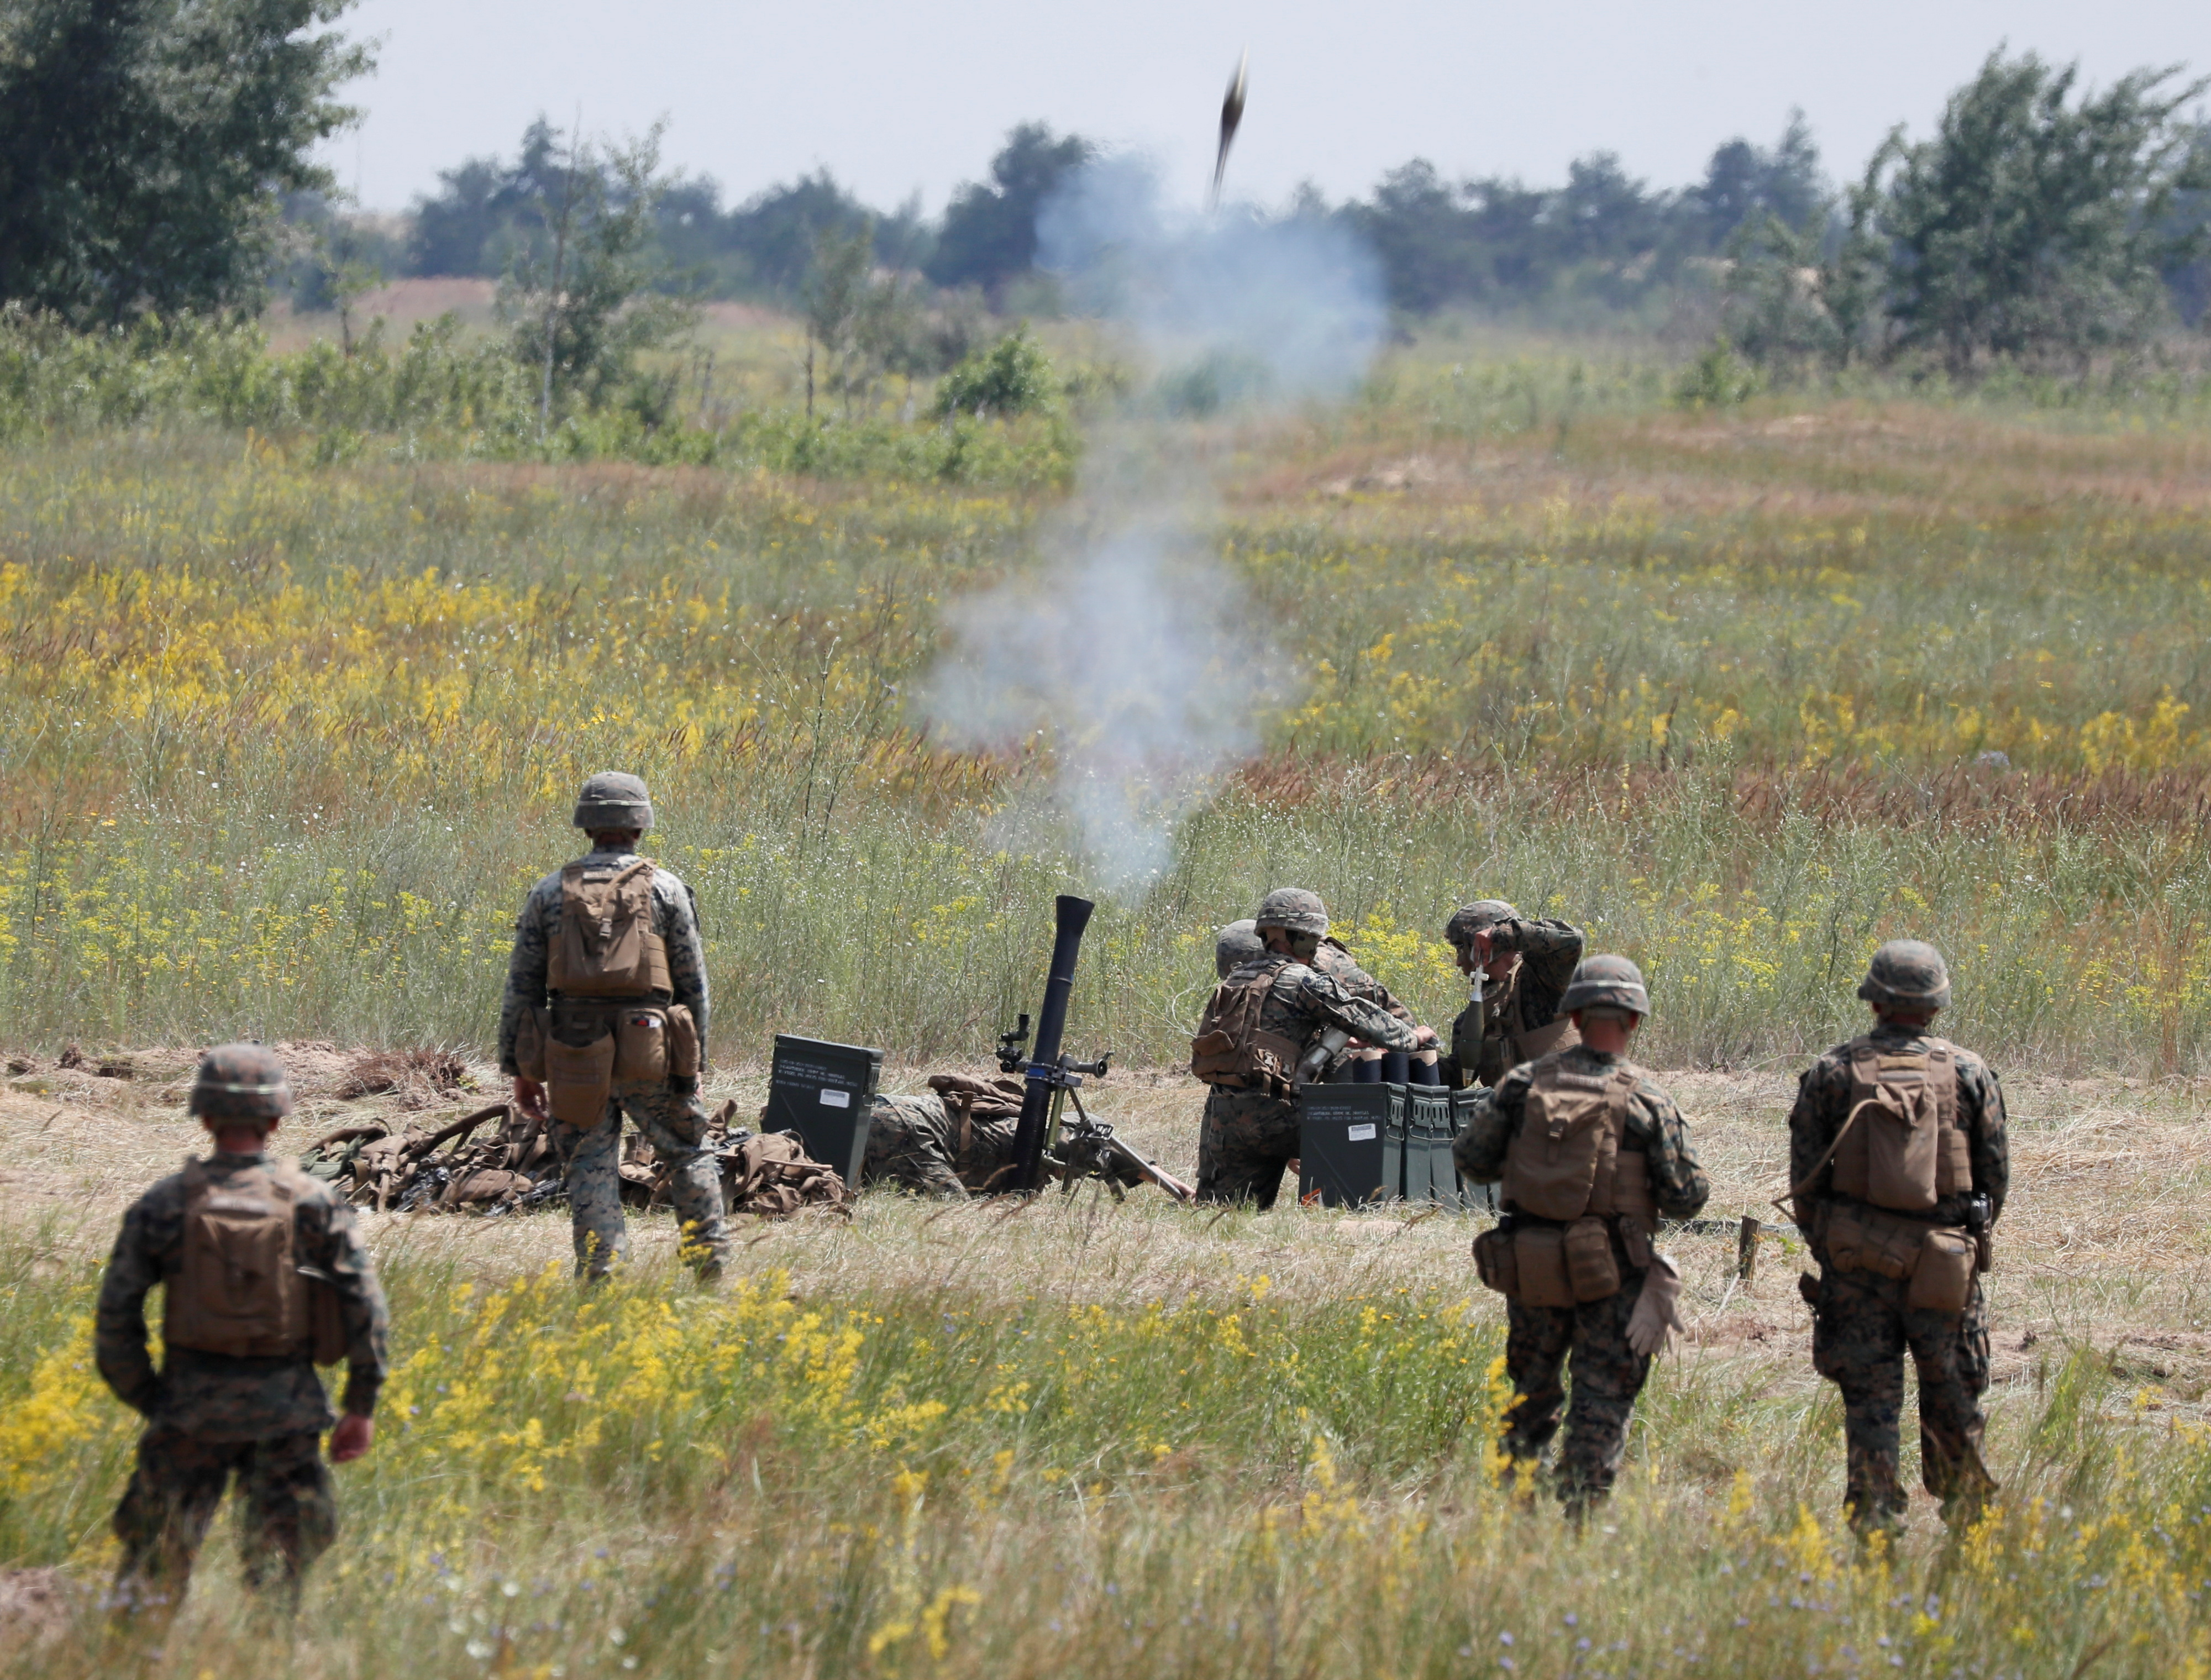 U.S. marines take part in a military exercises near Kherson, as Ukraine and the United States stage land military exercises involving more than 30 countries as part of multinational Sea Breeze 2021 drills, in southern Ukraine, July 2, 2021.  REUTERS/Gleb Garanich/File Photo